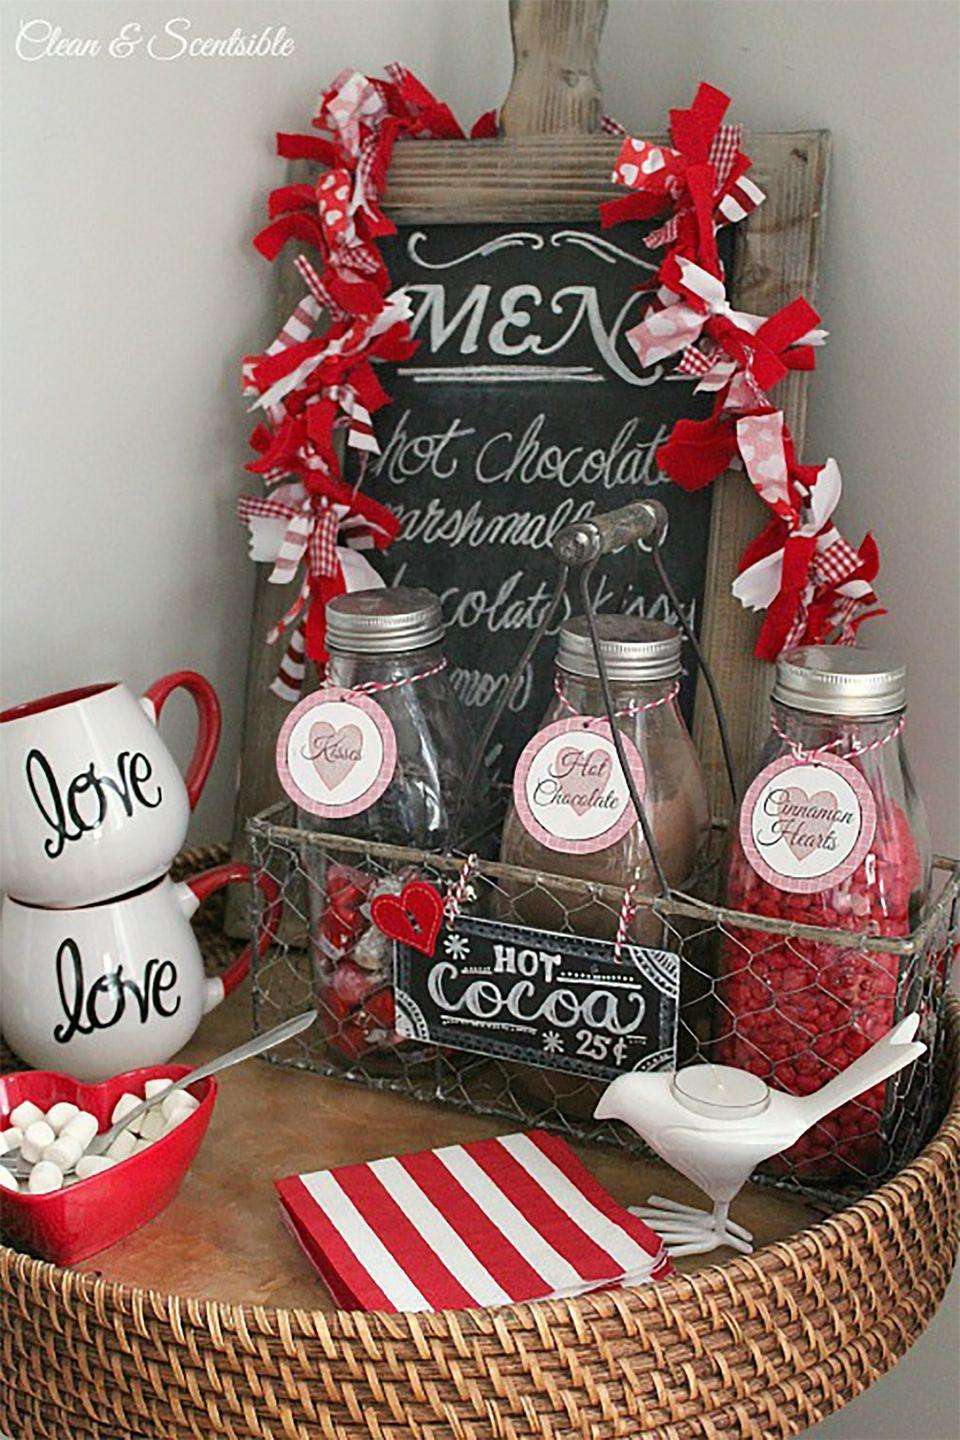 """<p>Nothing warms the heart more than a customized cup of hot cocoa.</p><p><strong>Get the tutorial at <a href=""""https://www.cleanandscentsible.com/valentines-day-decor/"""" rel=""""nofollow noopener"""" target=""""_blank"""" data-ylk=""""slk:Clean And Scentsible"""" class=""""link rapid-noclick-resp"""">Clean And Scentsible</a>.</strong></p><p><strong><a class=""""link rapid-noclick-resp"""" href=""""https://www.amazon.com/Best-Sellers-Office-Products-Chalkboards/zgbs/office-products/1069310?tag=syn-yahoo-20&ascsubtag=%5Bartid%7C10050.g.2971%5Bsrc%7Cyahoo-us"""" rel=""""nofollow noopener"""" target=""""_blank"""" data-ylk=""""slk:SHOP CHALKBOARDS"""">SHOP CHALKBOARDS</a><br></strong></p>"""